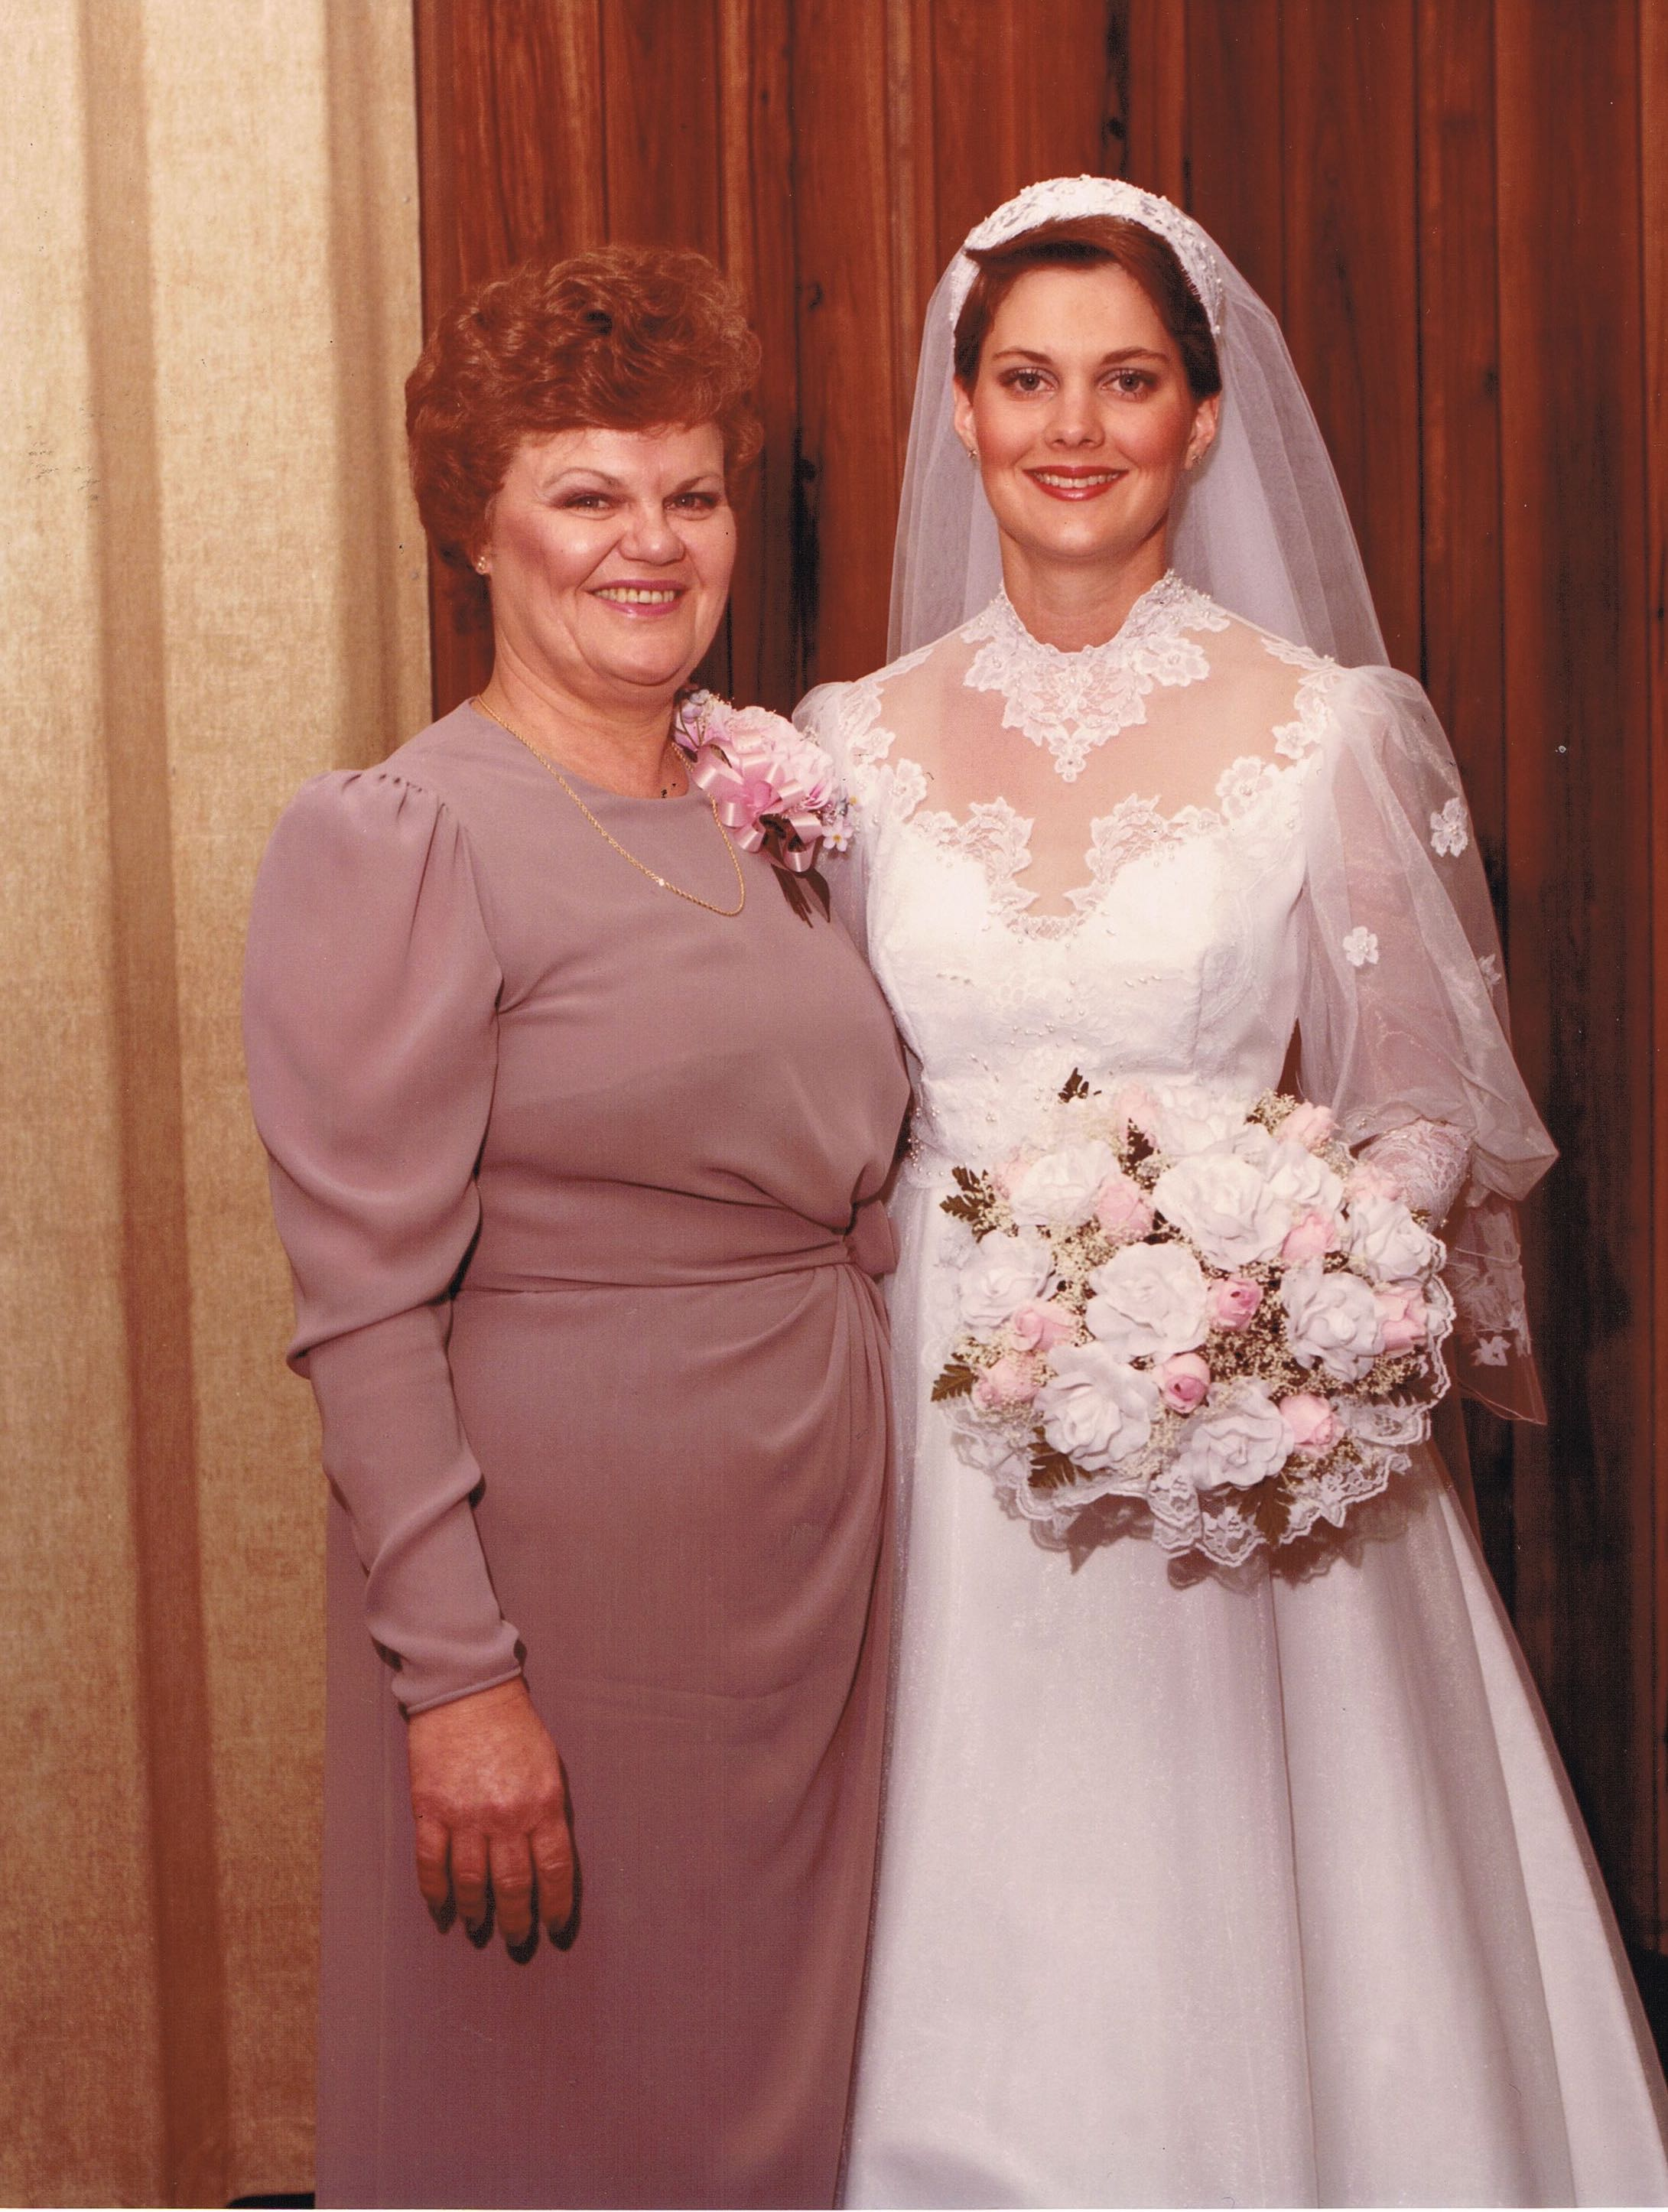 Author Cathy Lawdanski and her mom, Pat Lynch, April 14, 1984